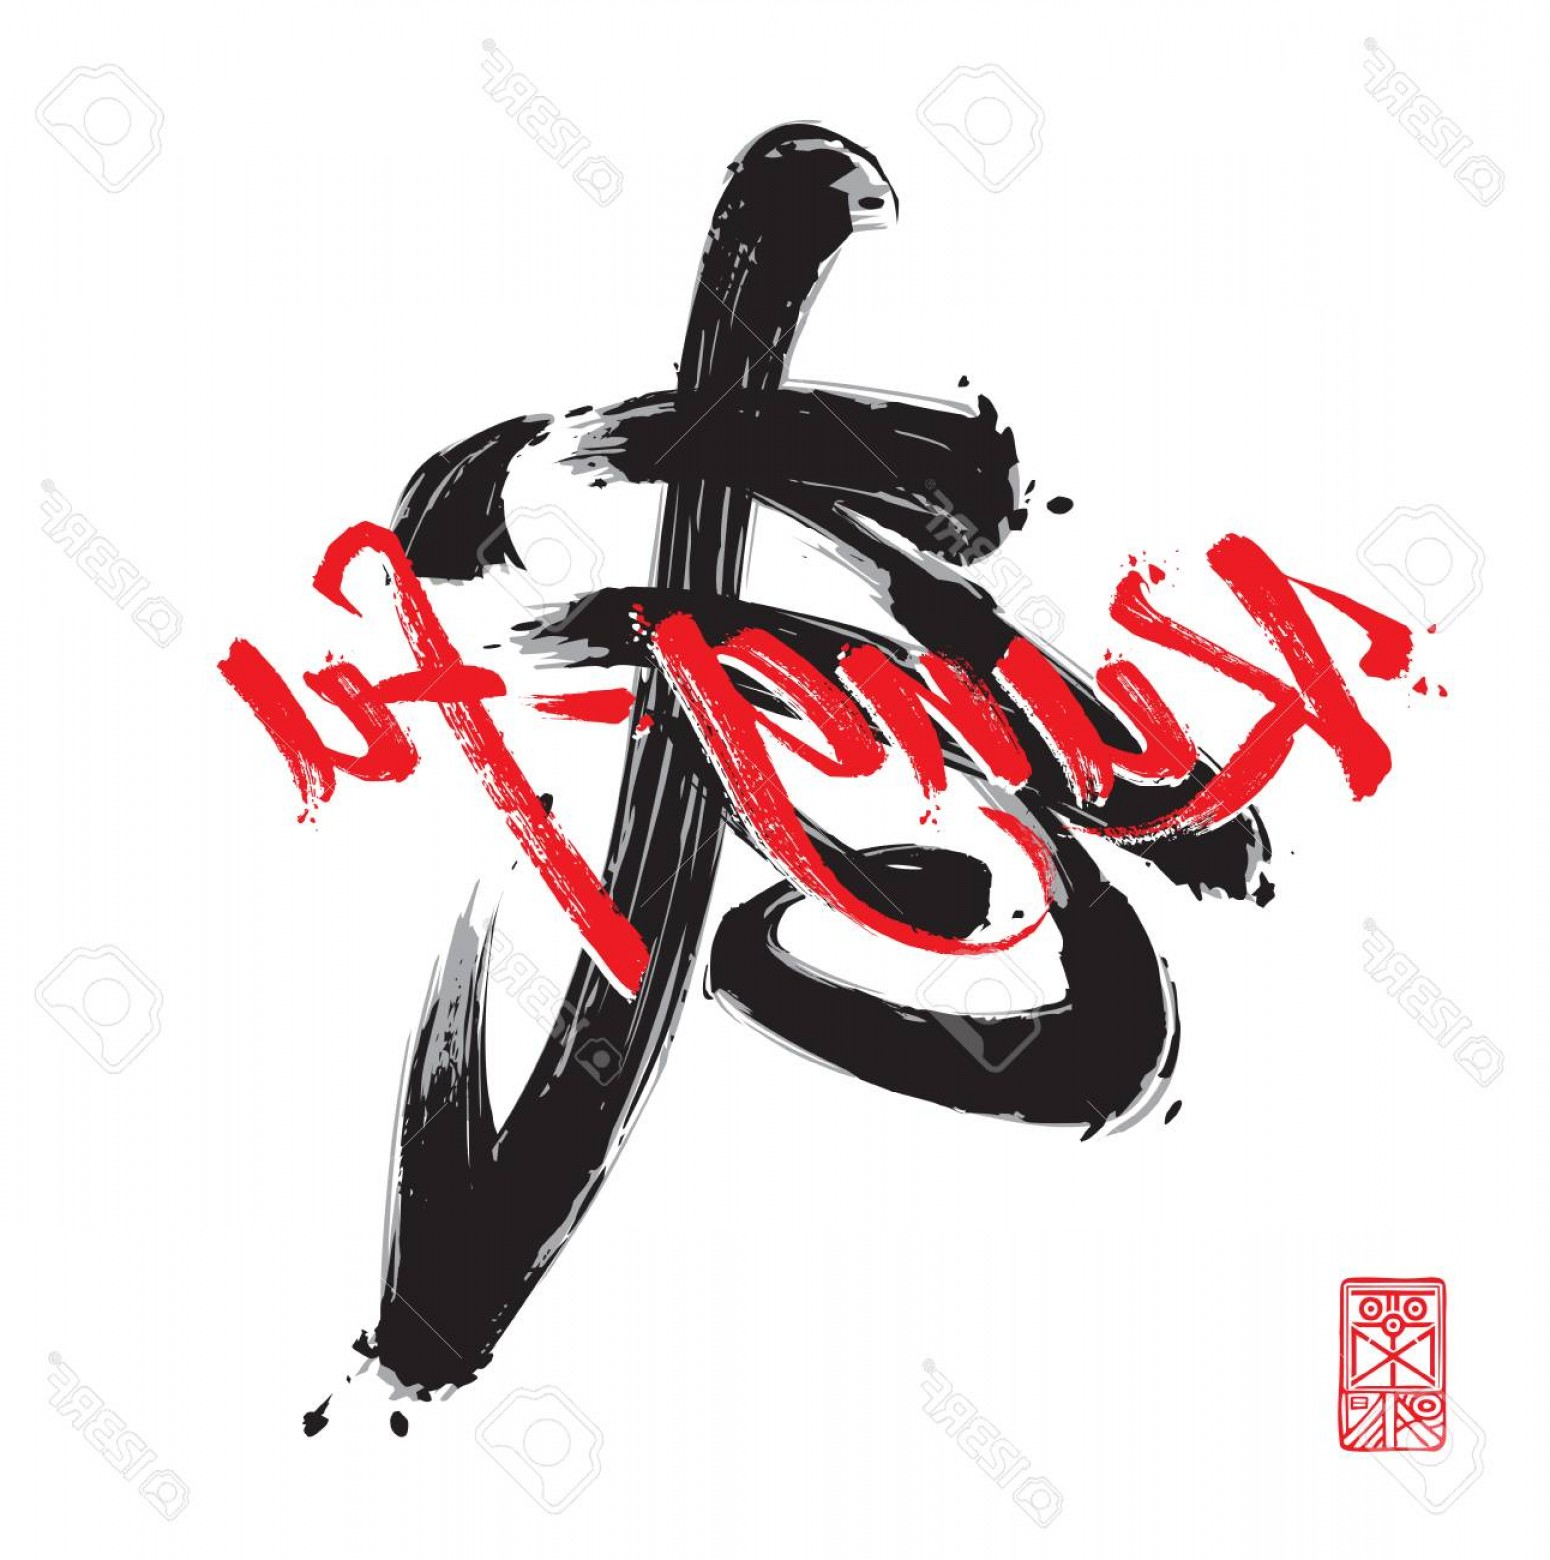 Spawn Vector: Photostock Vector Vector Illustration Of A Calligraphic Chinese Logogram Of The Word Kung Fu Together With A Custom Wr